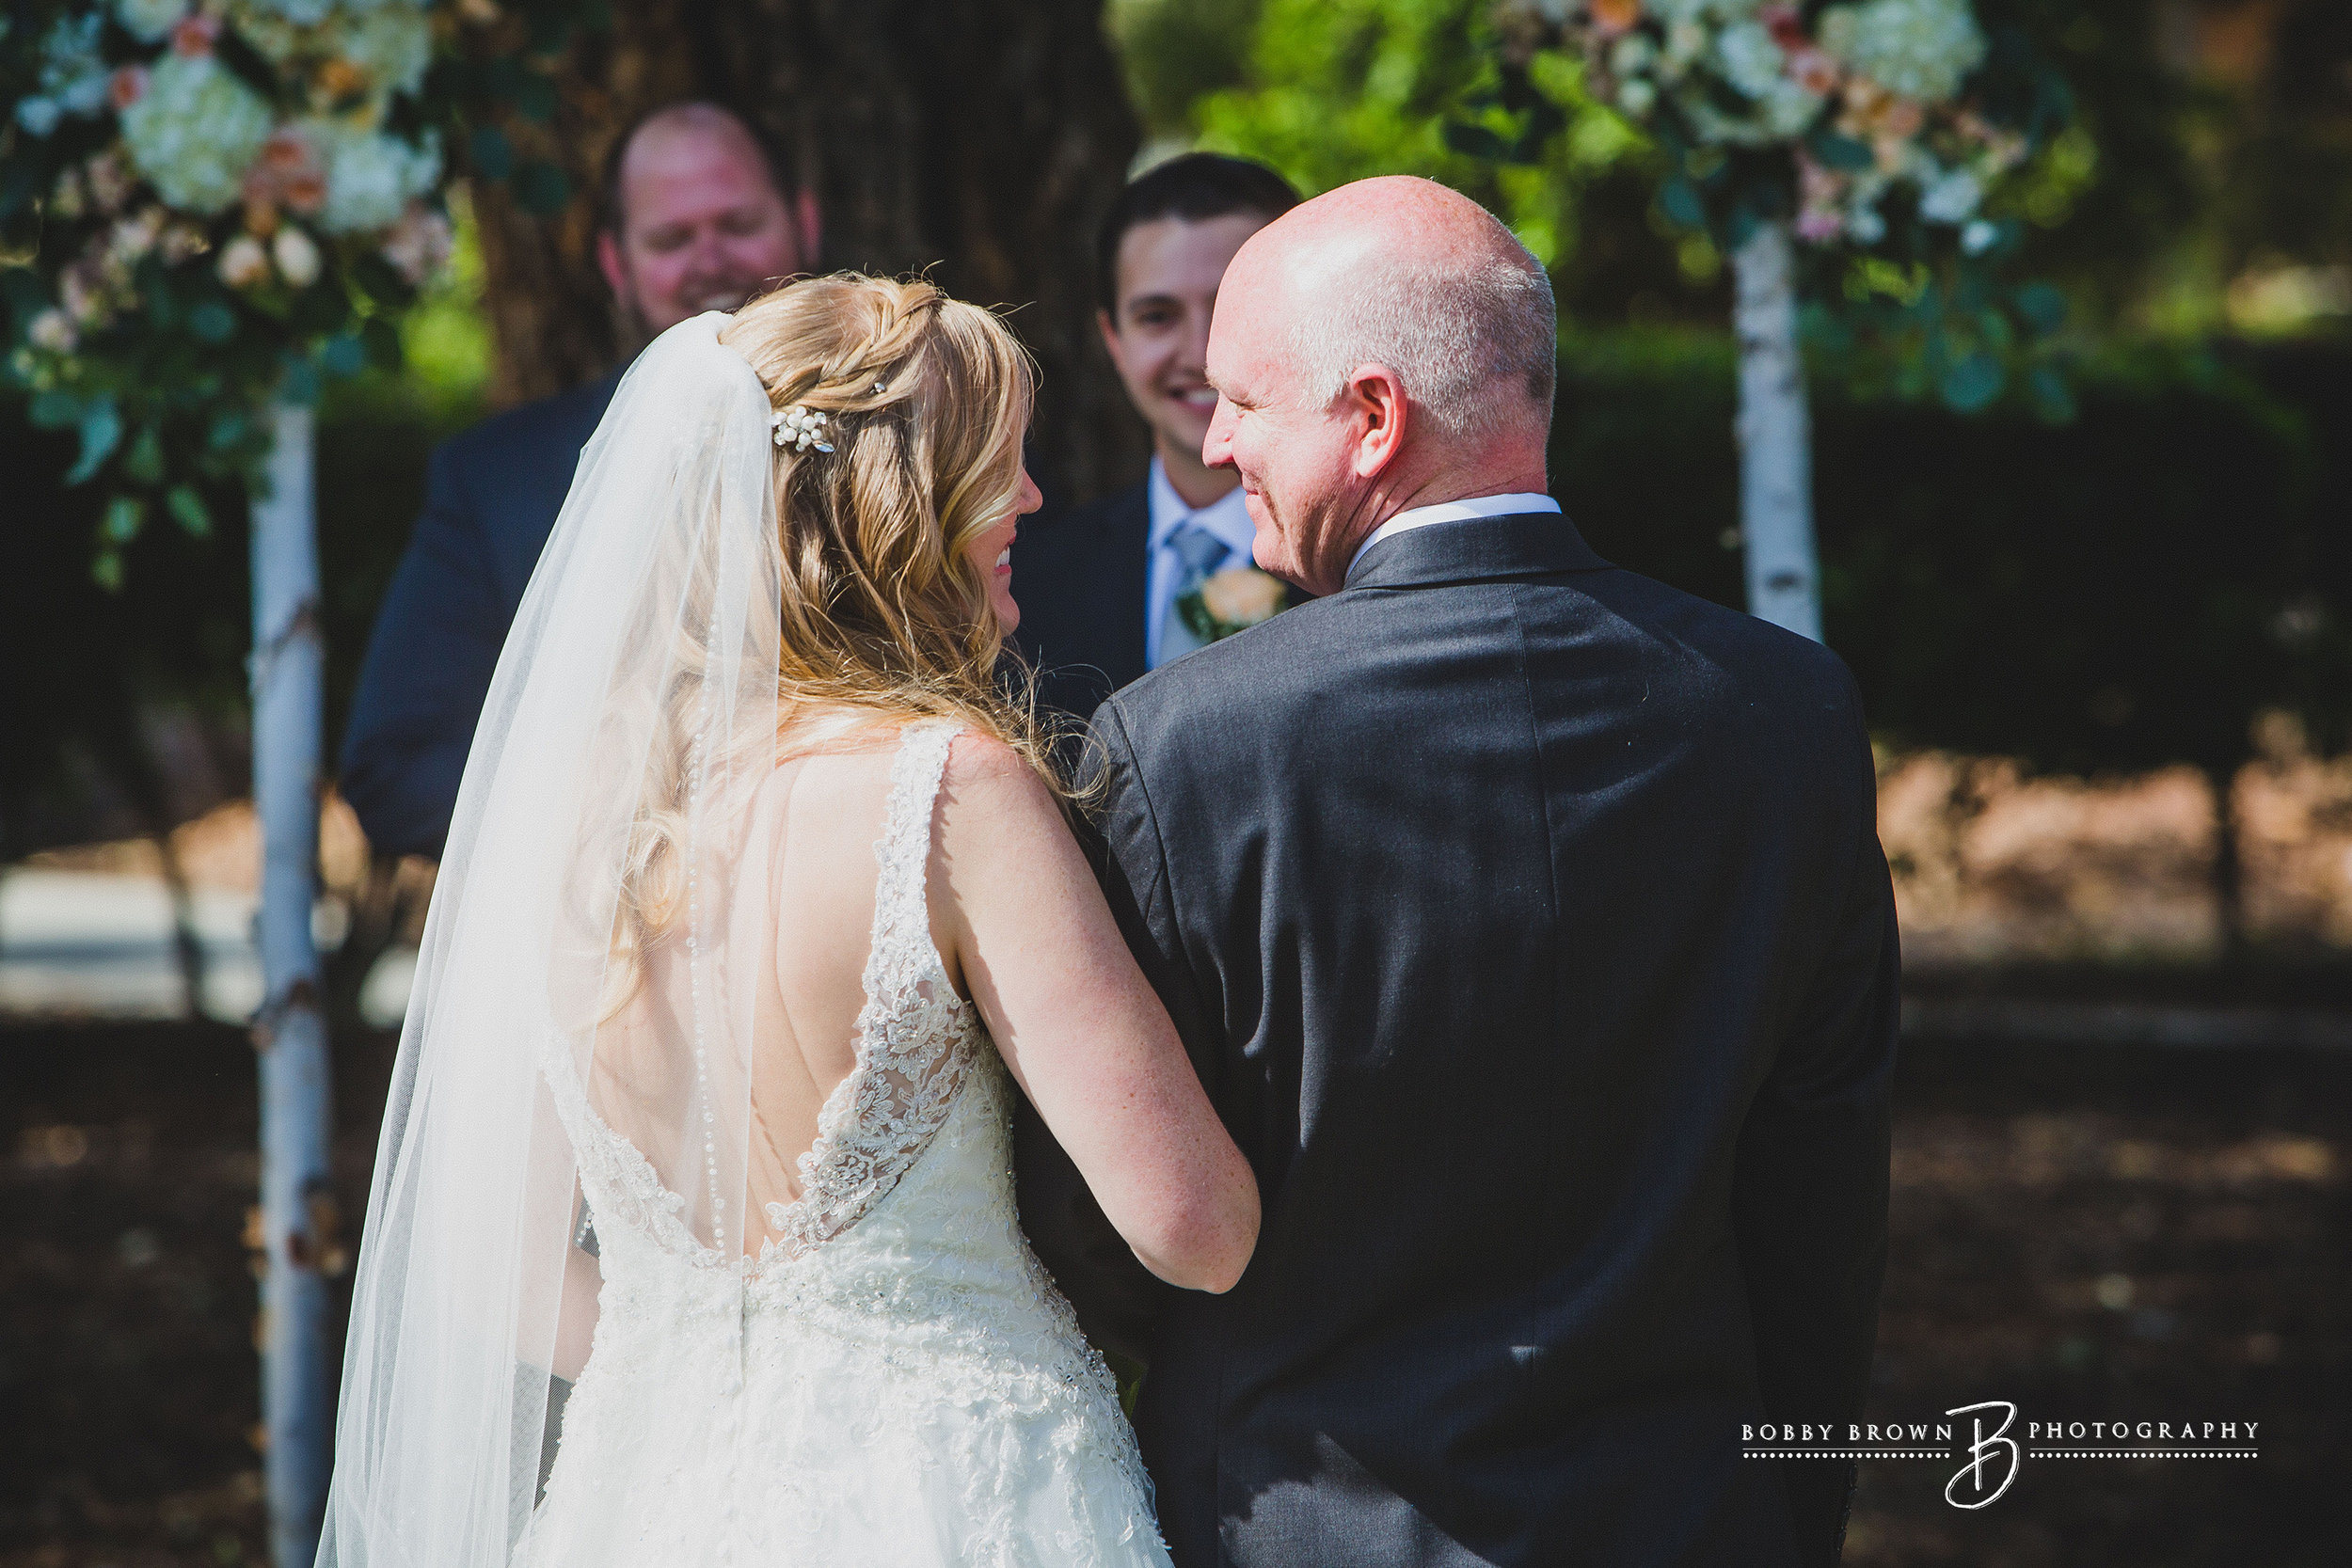 hugginswedding-528.jpg